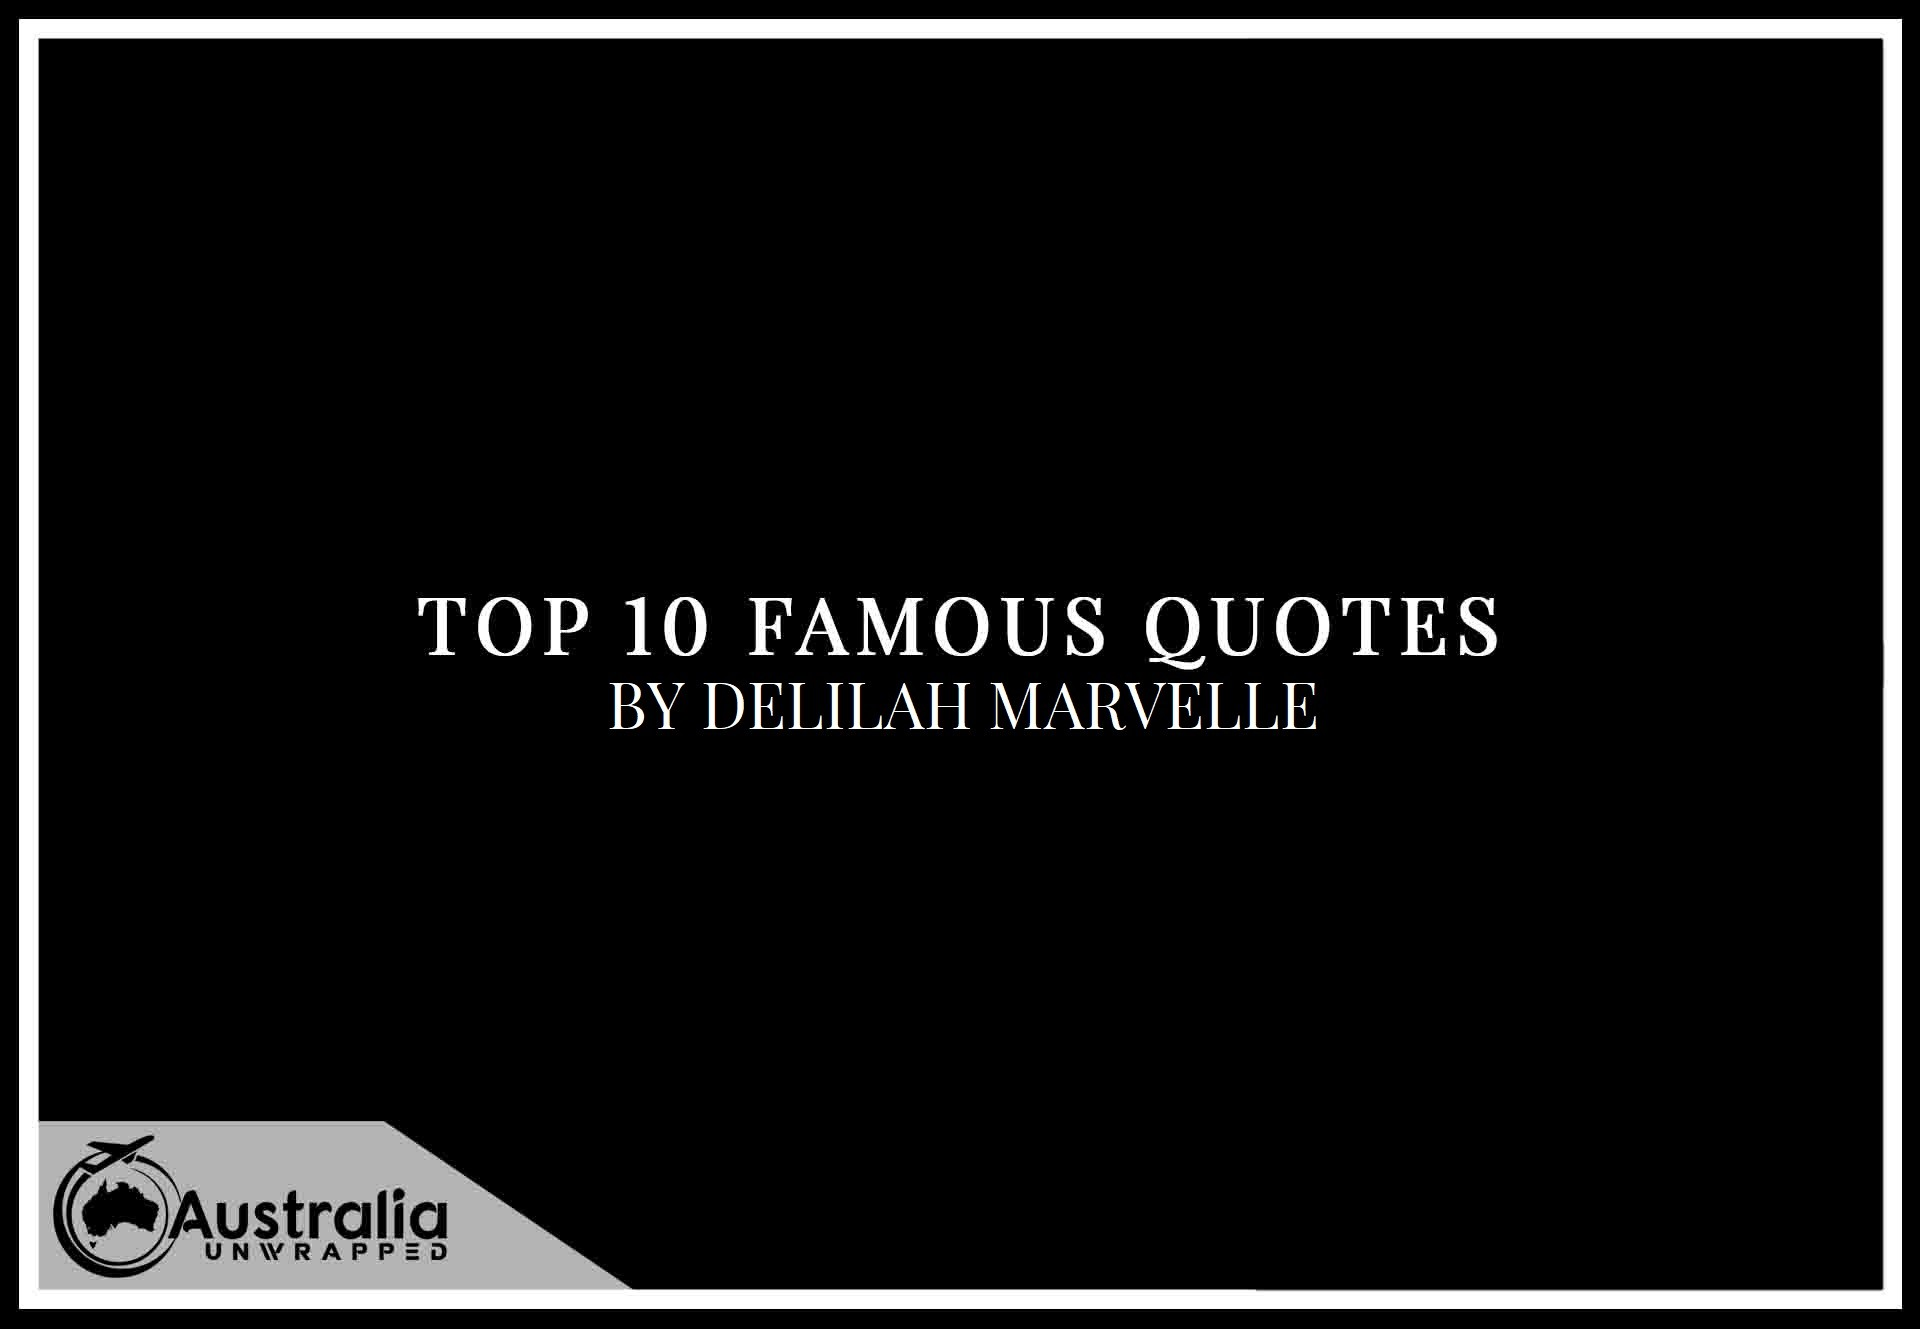 Top 10 Famous Quotes by Author Delilah Marvelle